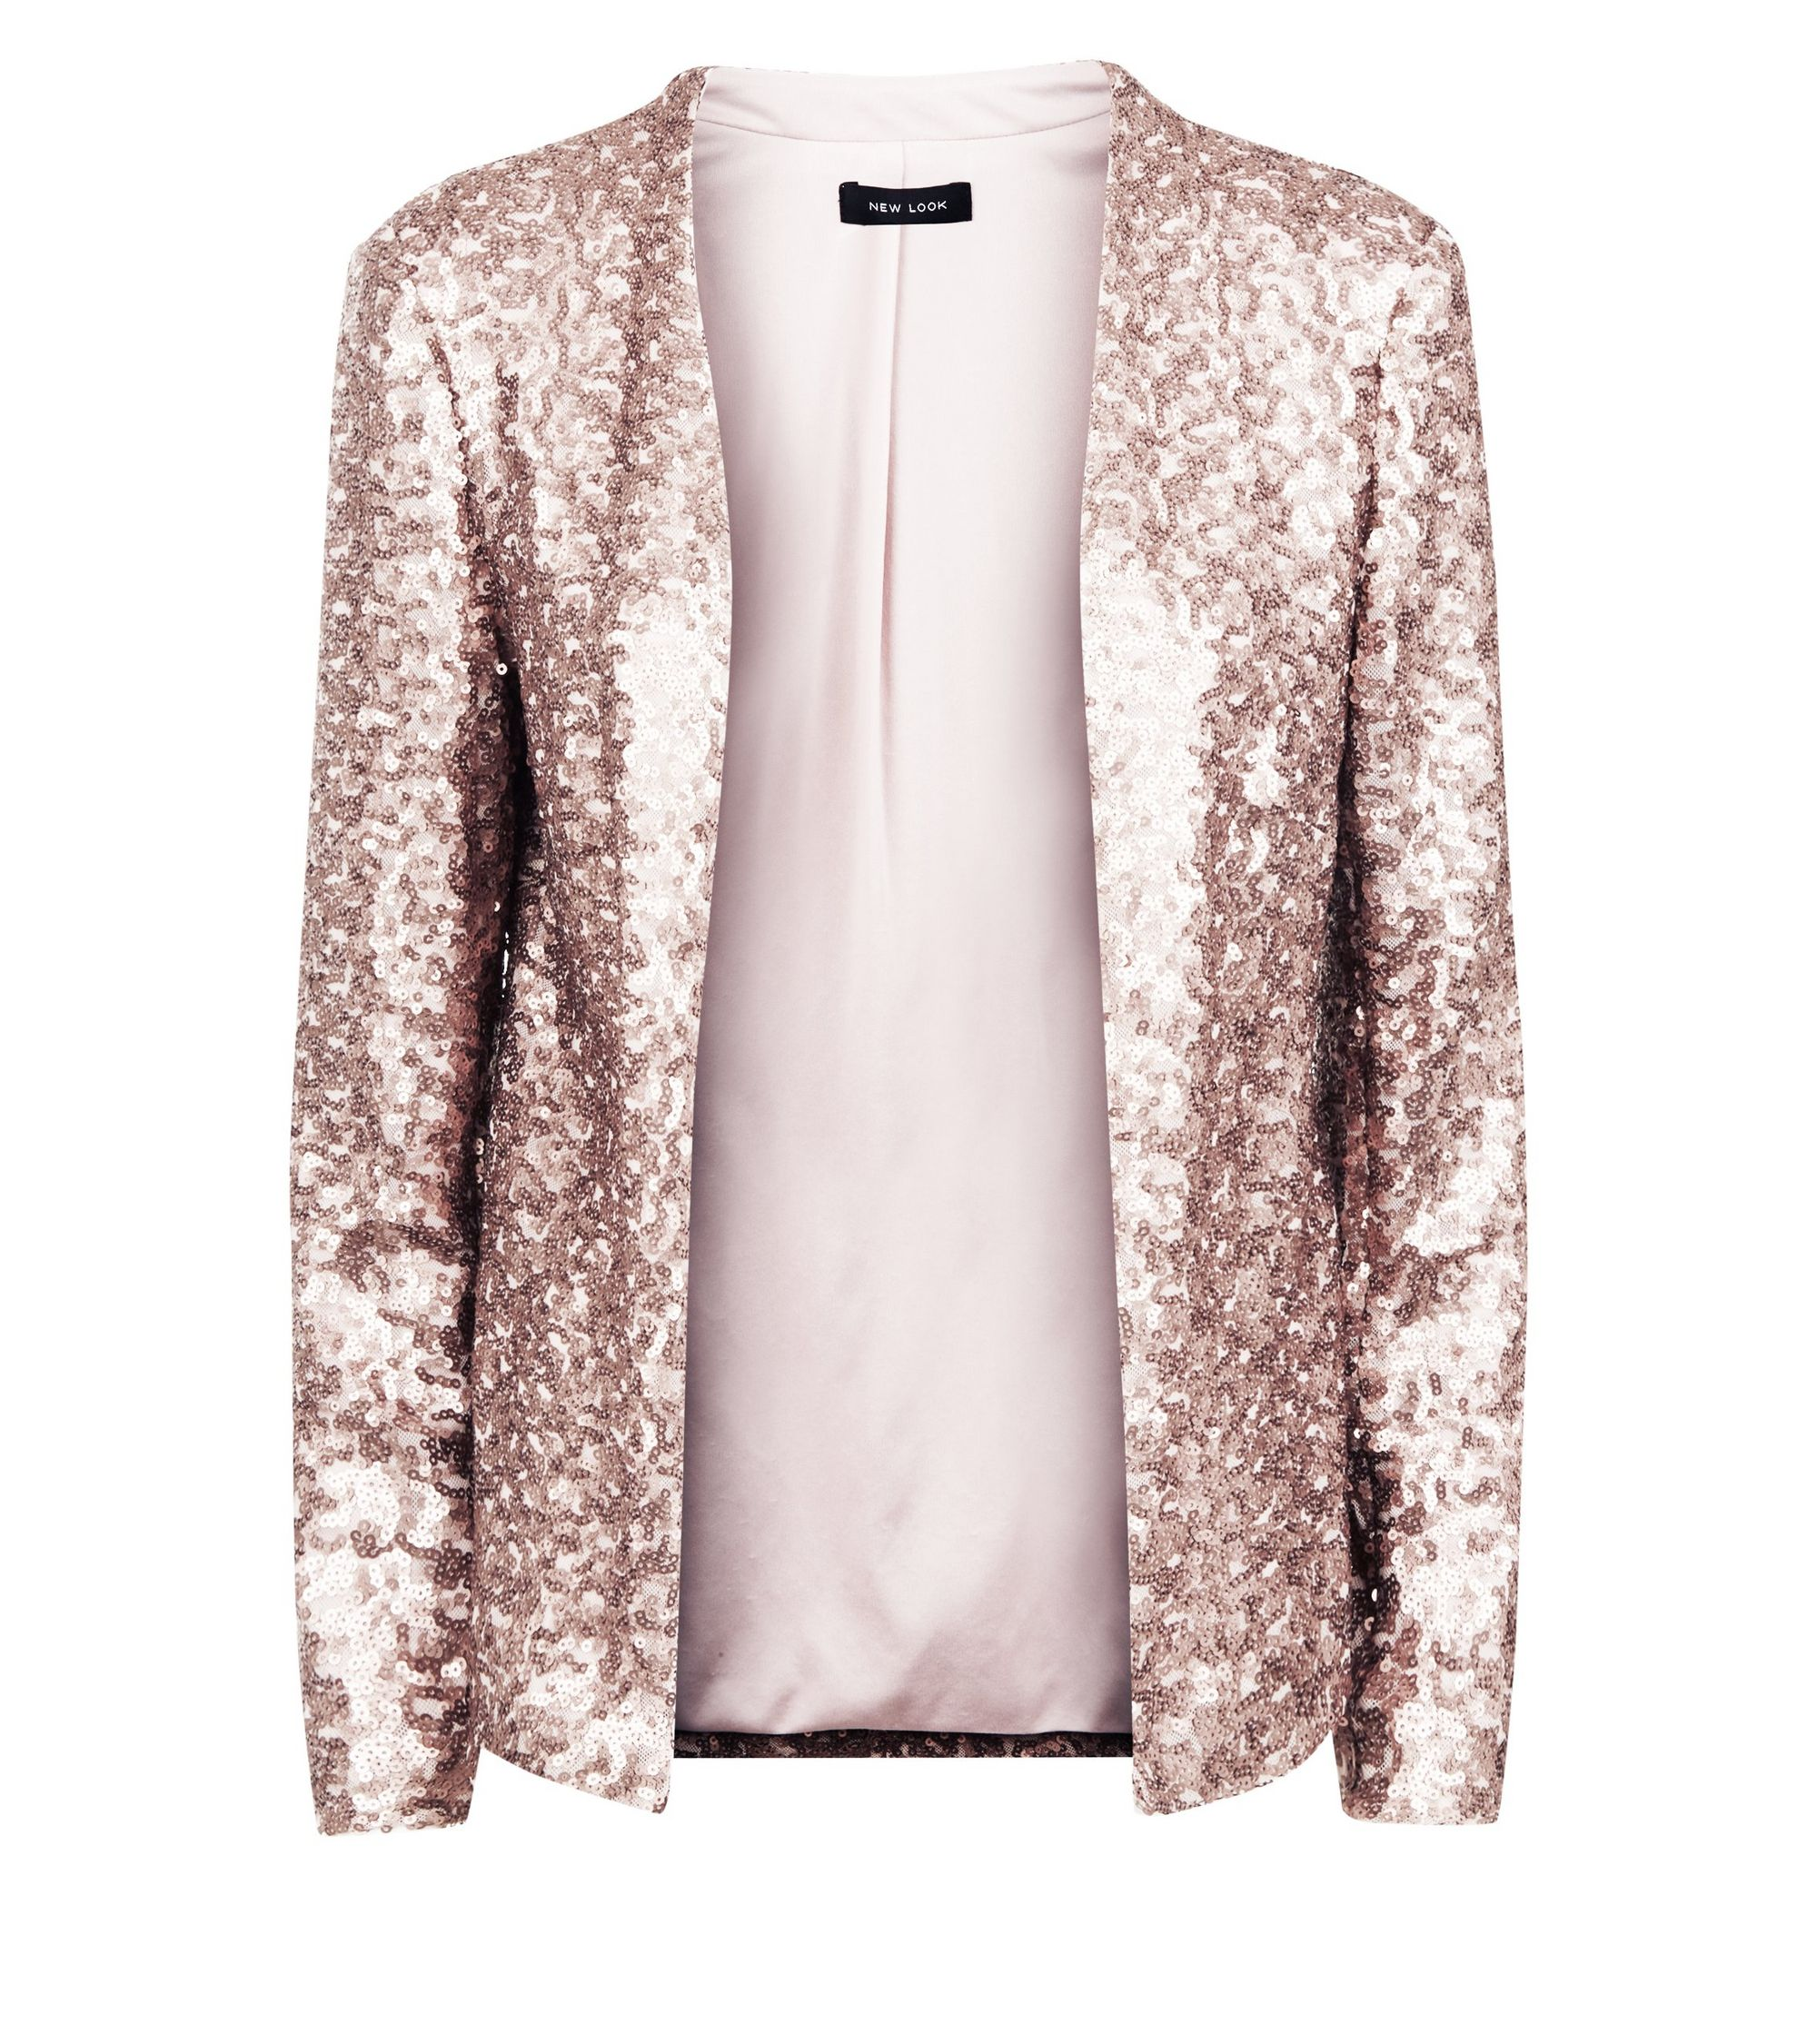 buying new half price order online New Look Rose Gold Sequin Blazer at £34.99 | love the brands